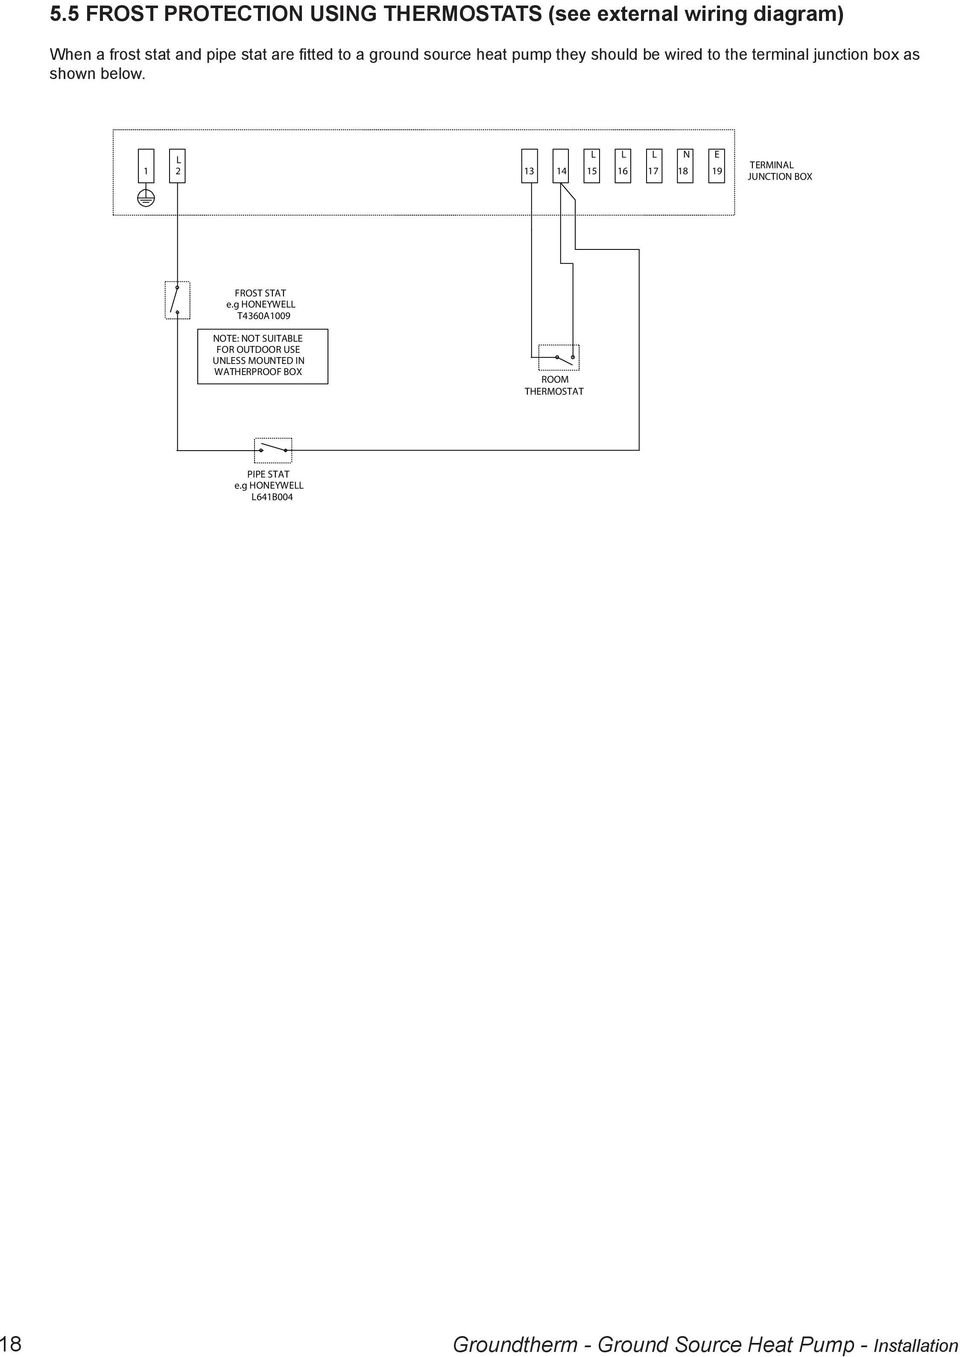 Installation And Operating Pdf Piping Schematic Ground Source Heat Pump N E 1 2 13 14 15 16 17 18 19 Termina Junction Box Frost Stat